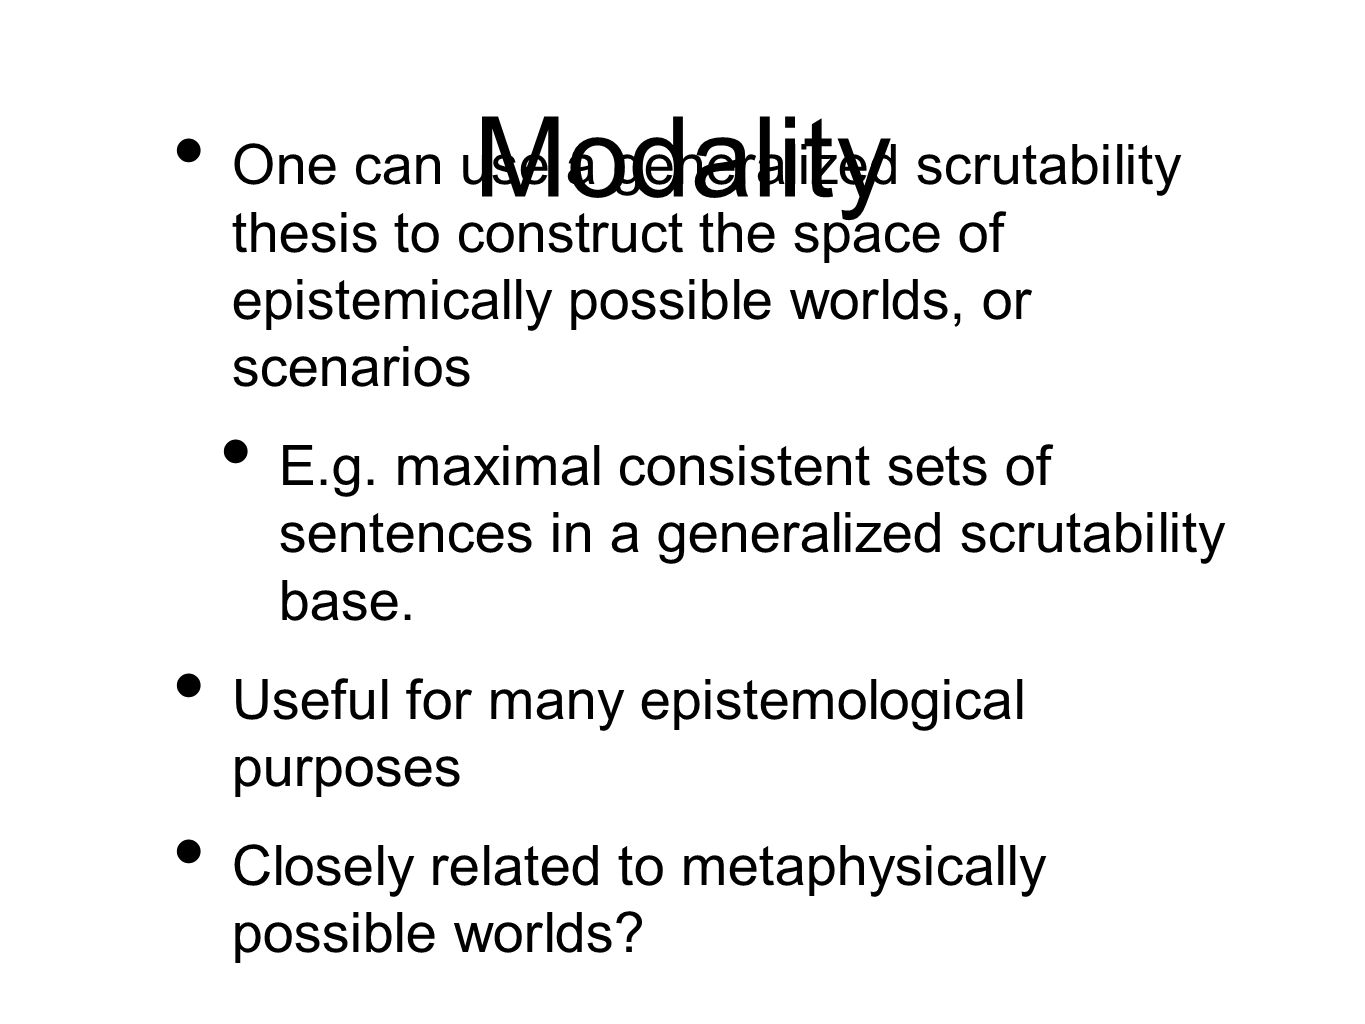 Modality One can use a generalized scrutability thesis to construct the space of epistemically possible worlds, or scenarios.